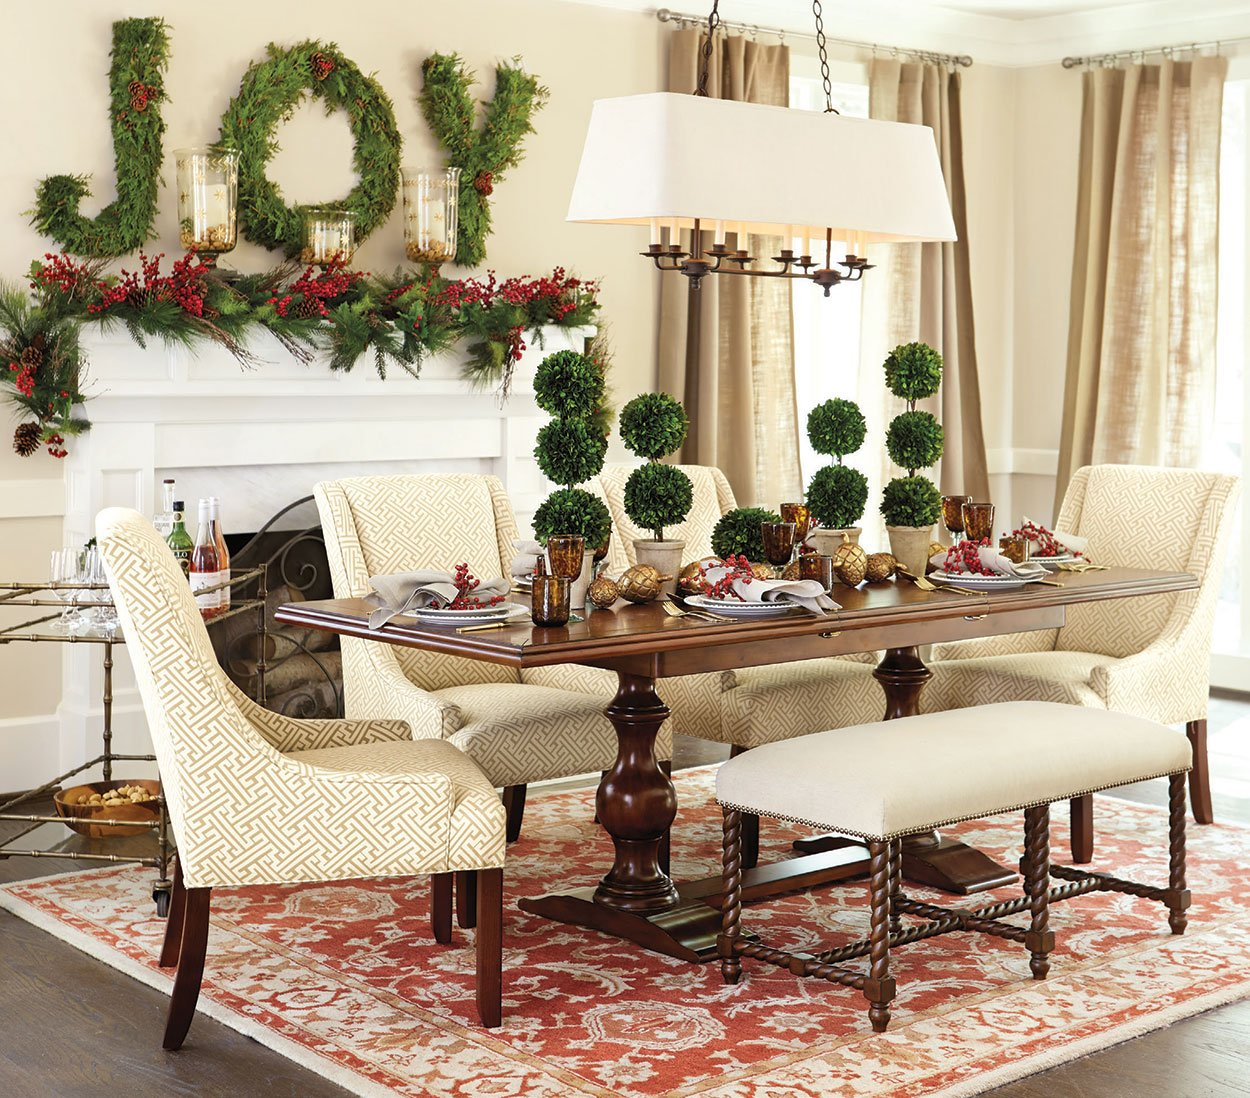 Holiday Home Design Ideas: A Colorado Christmas Design Trend: Stylized Woodland